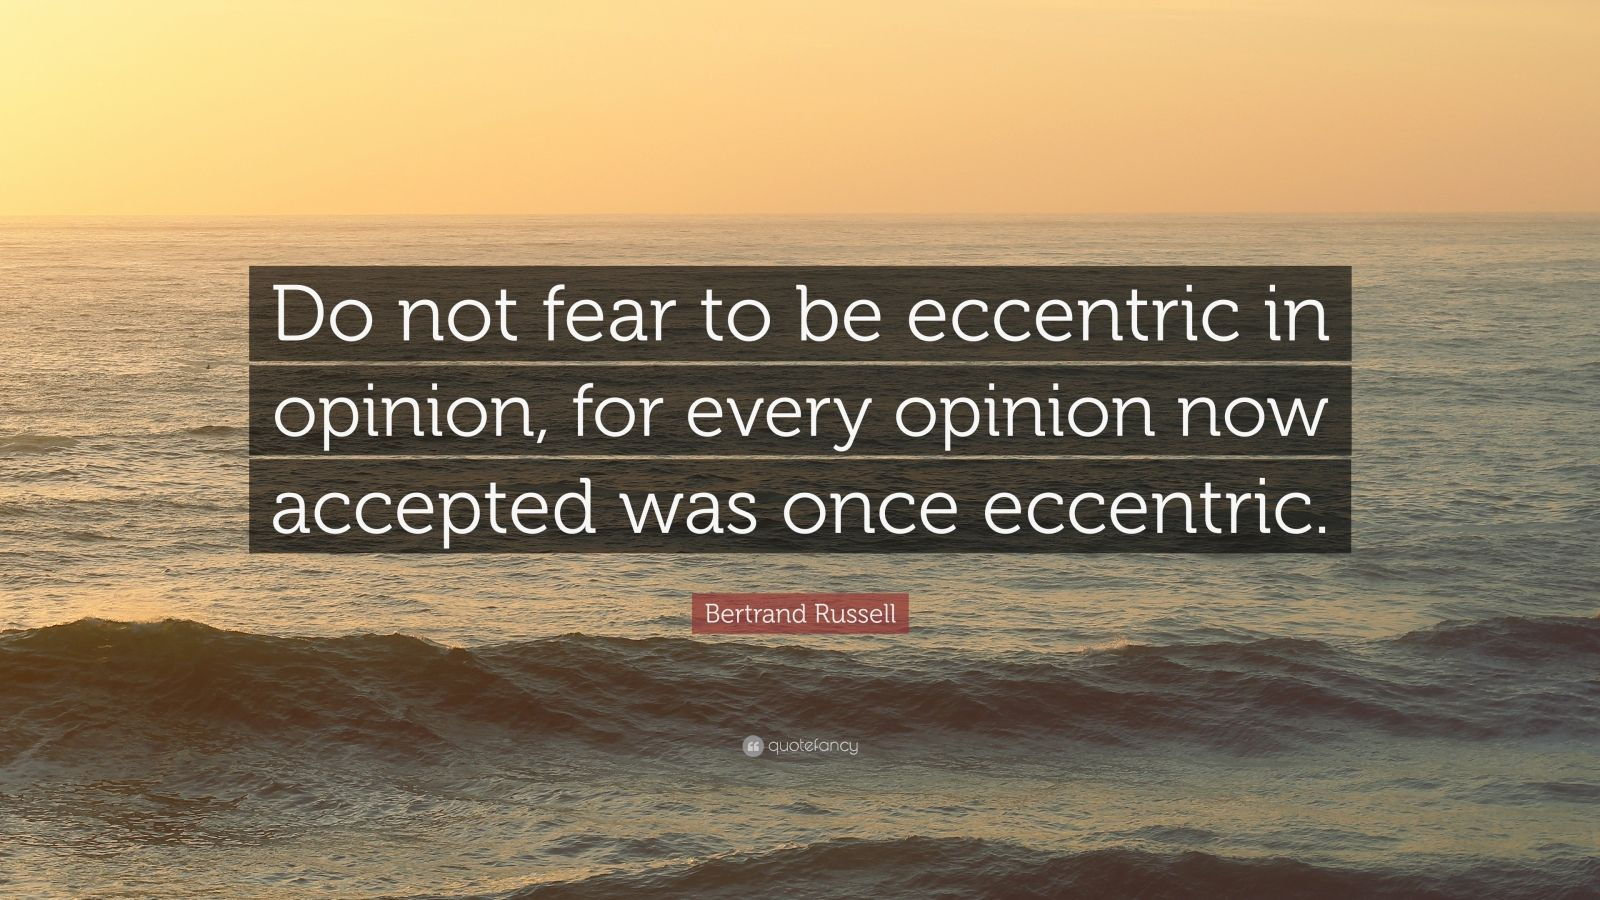 Citaten Hemingway : Confidence quotes: u201cdo not fear to be eccentric in opinion for